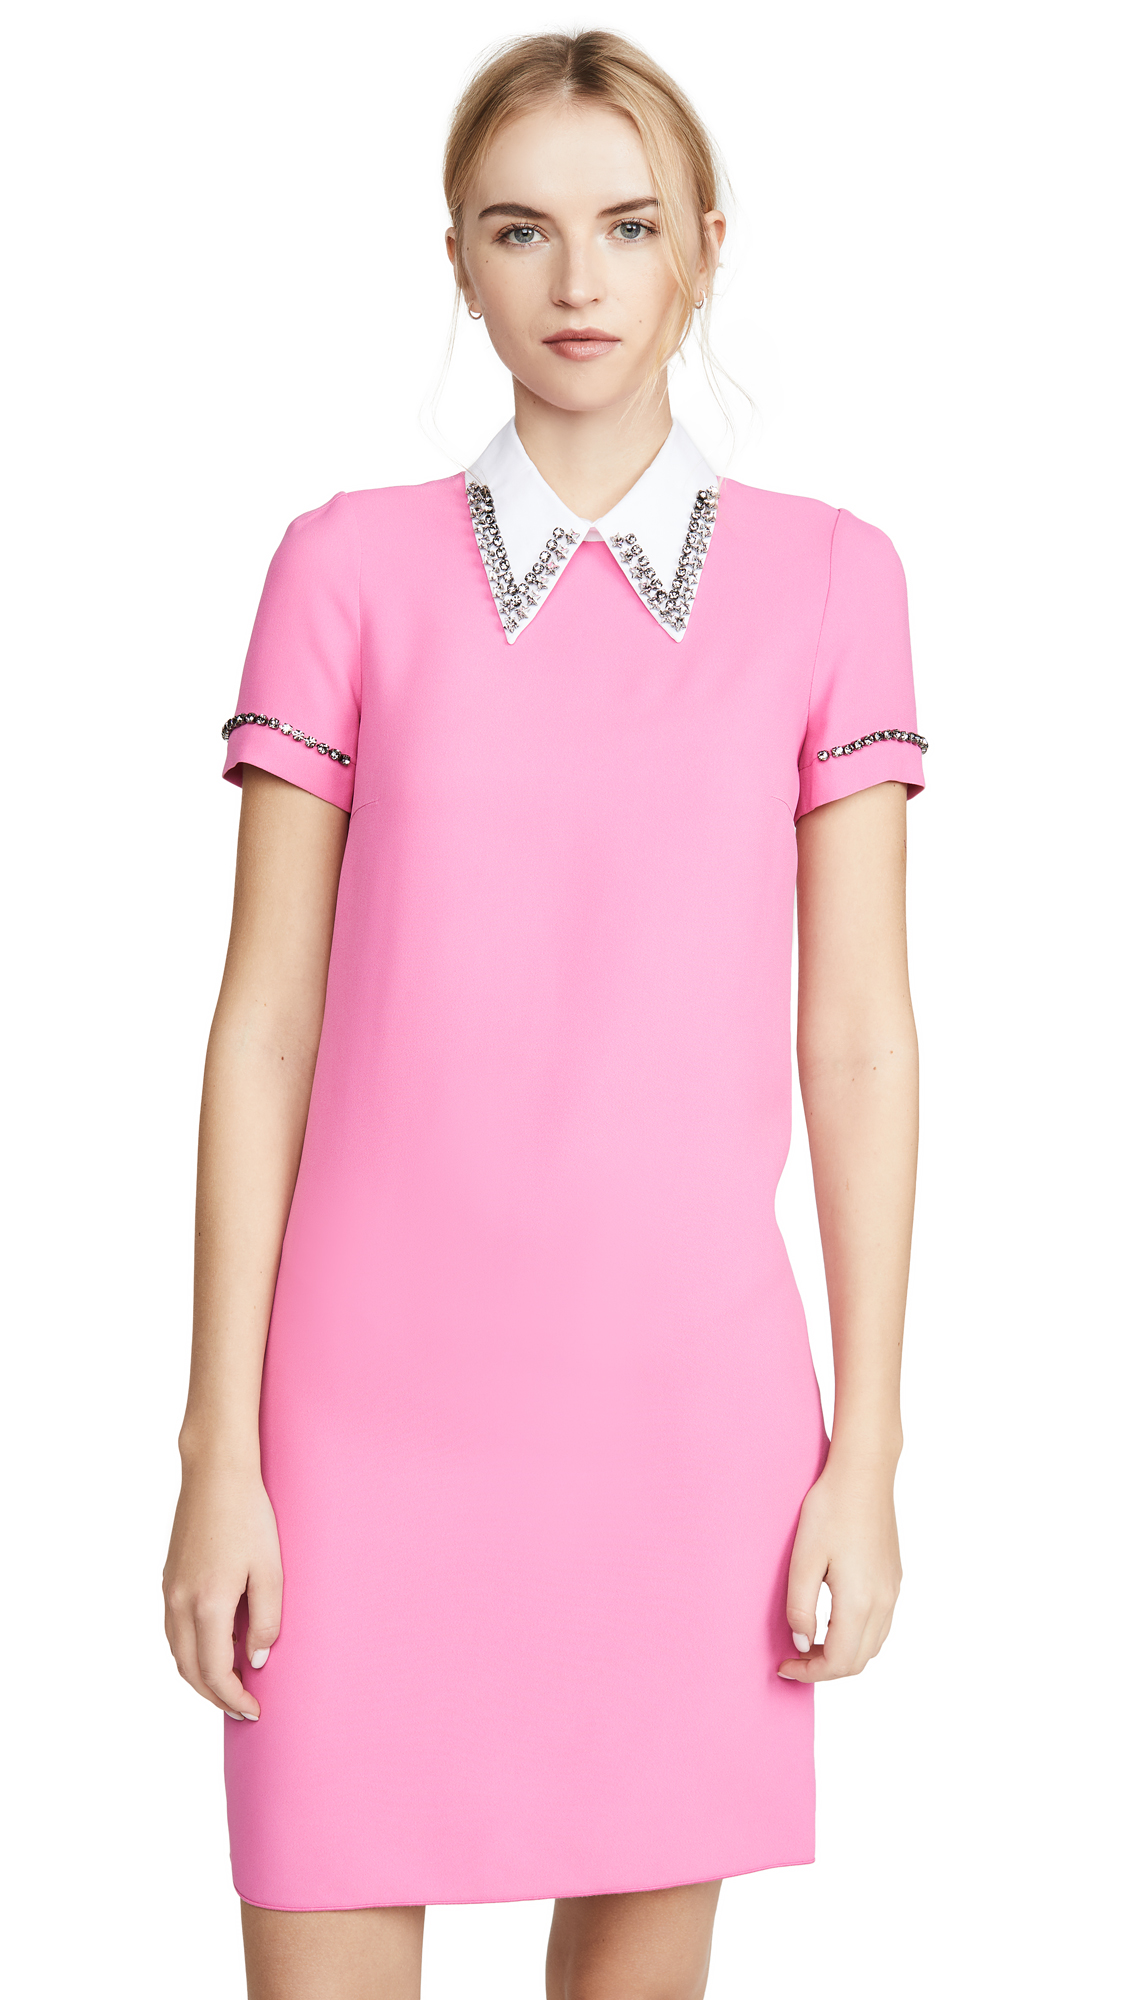 No. 21 Collared Mini Dress – 40% Off Sale